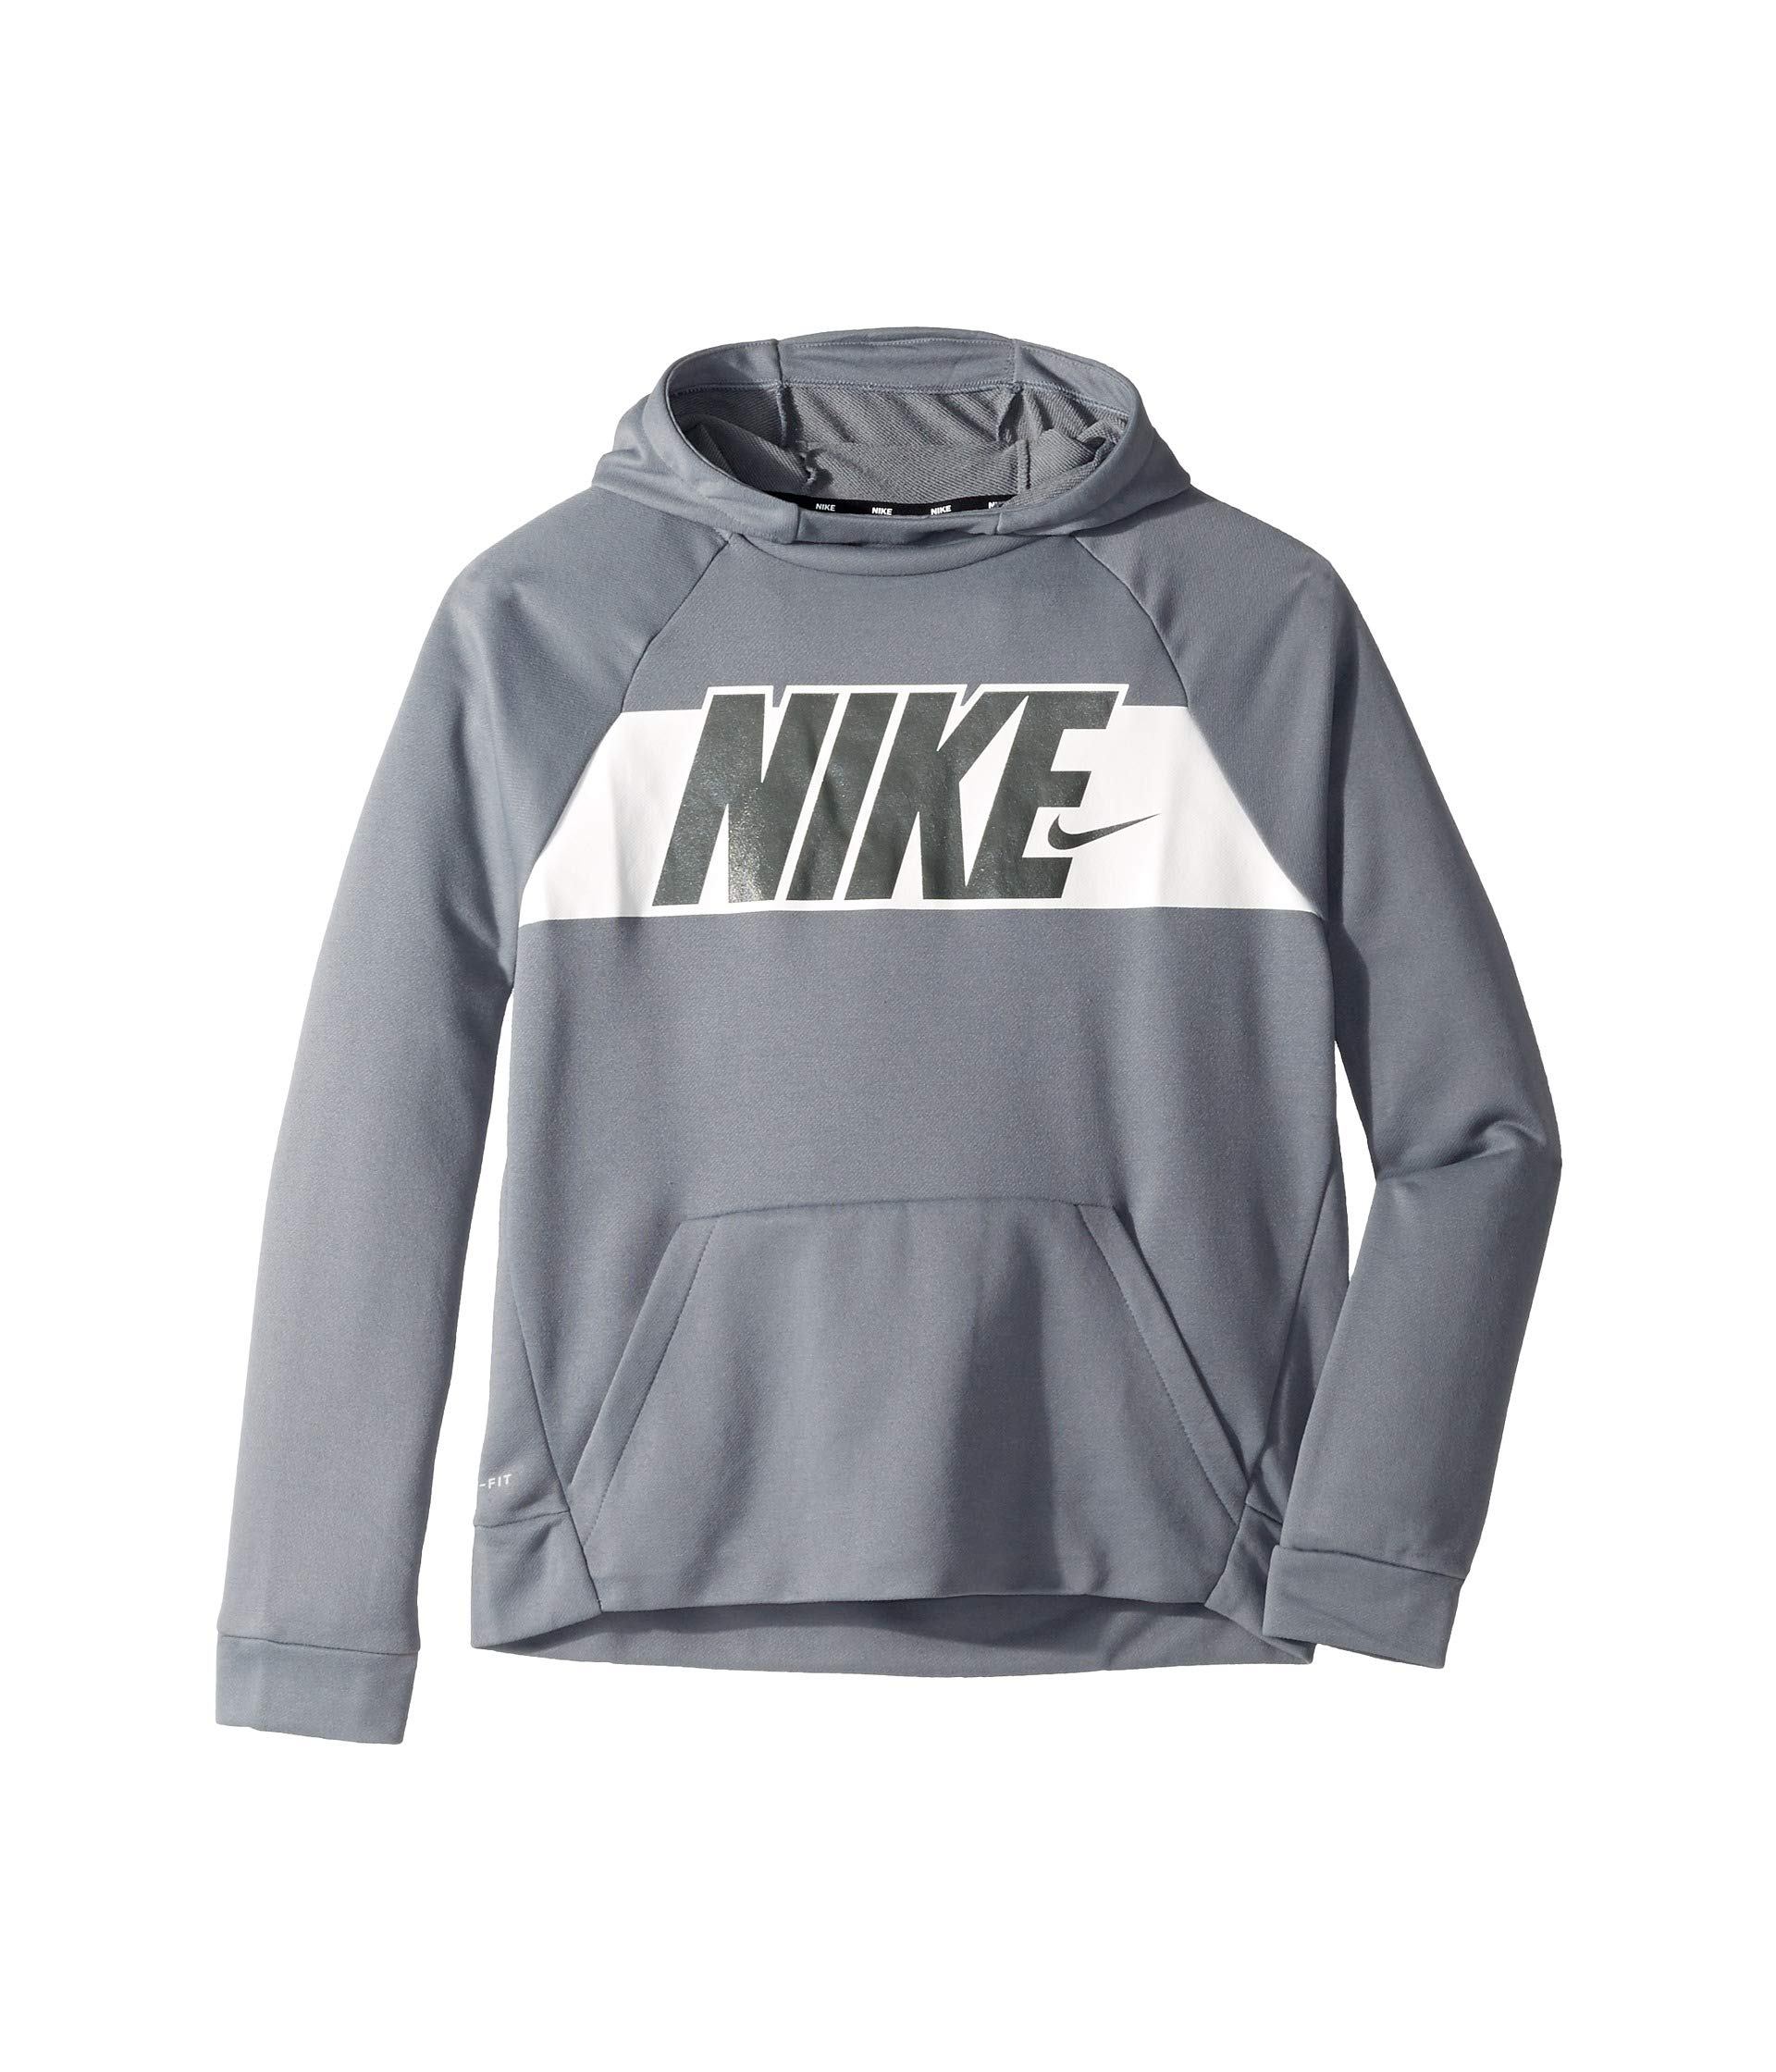 Nike Boy's Graphic Training Pullover Hoodie Cool Grey/White Size X-Large